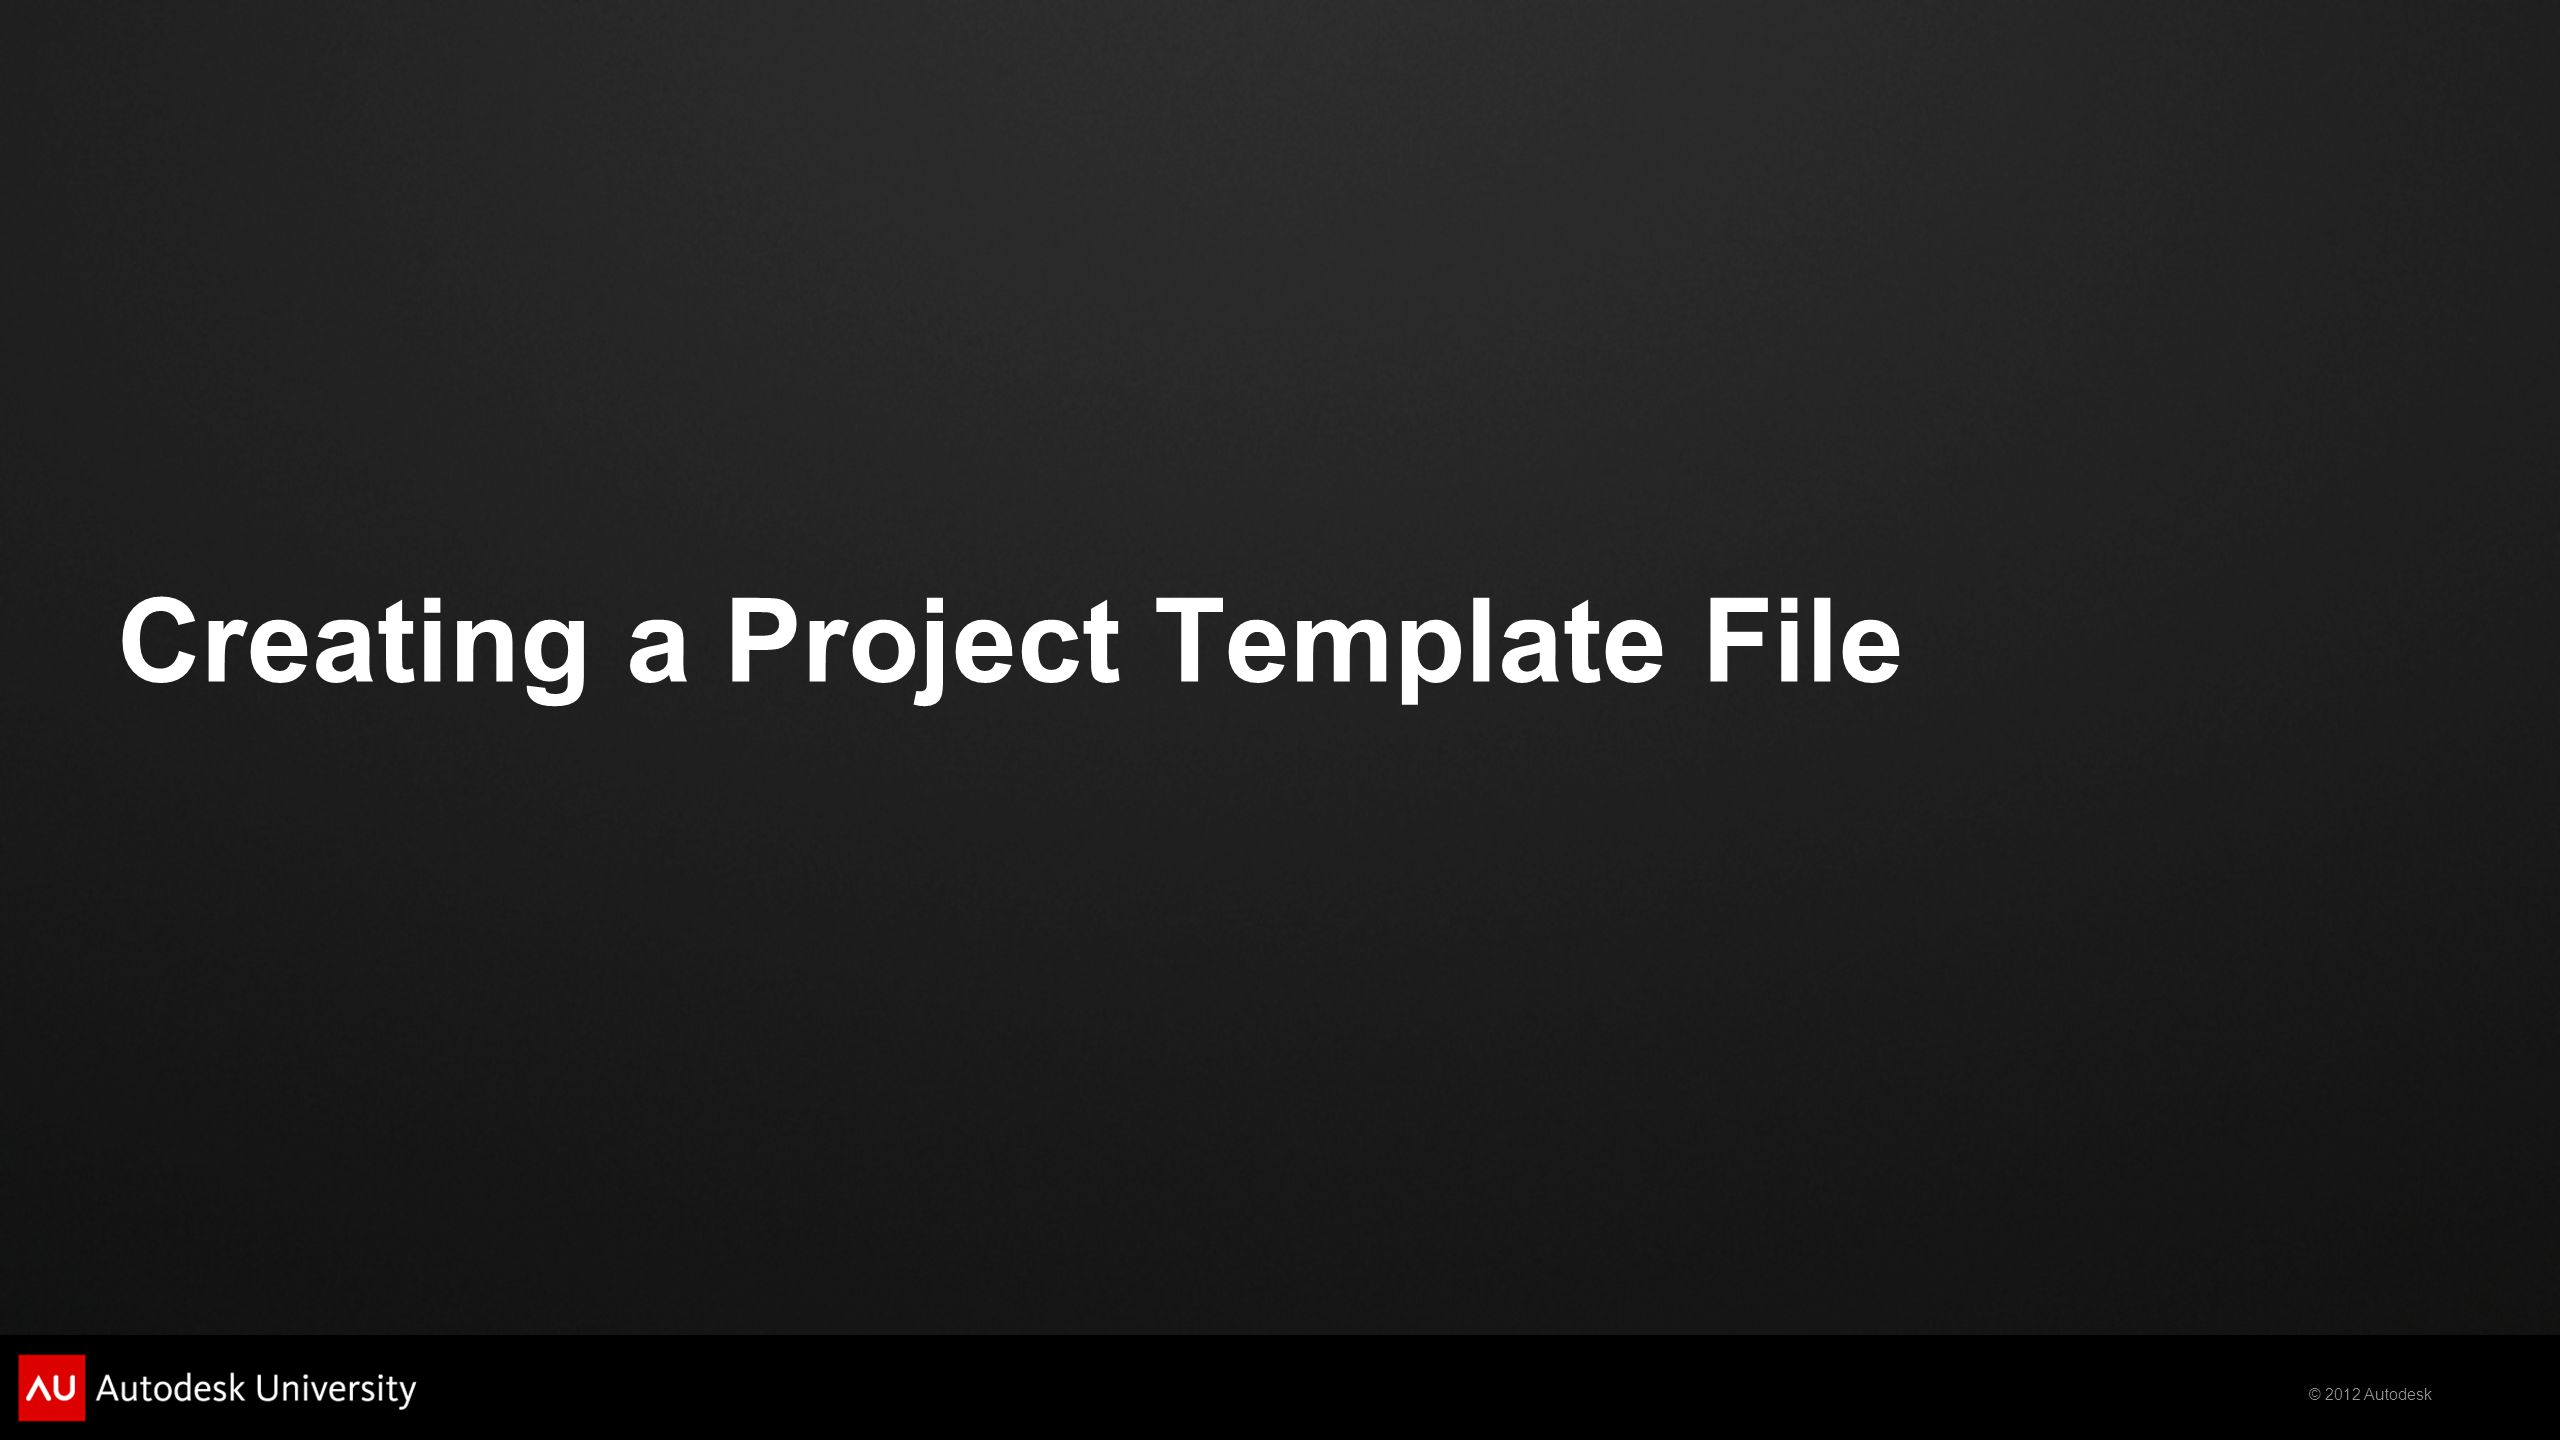 Creating a Project Template File